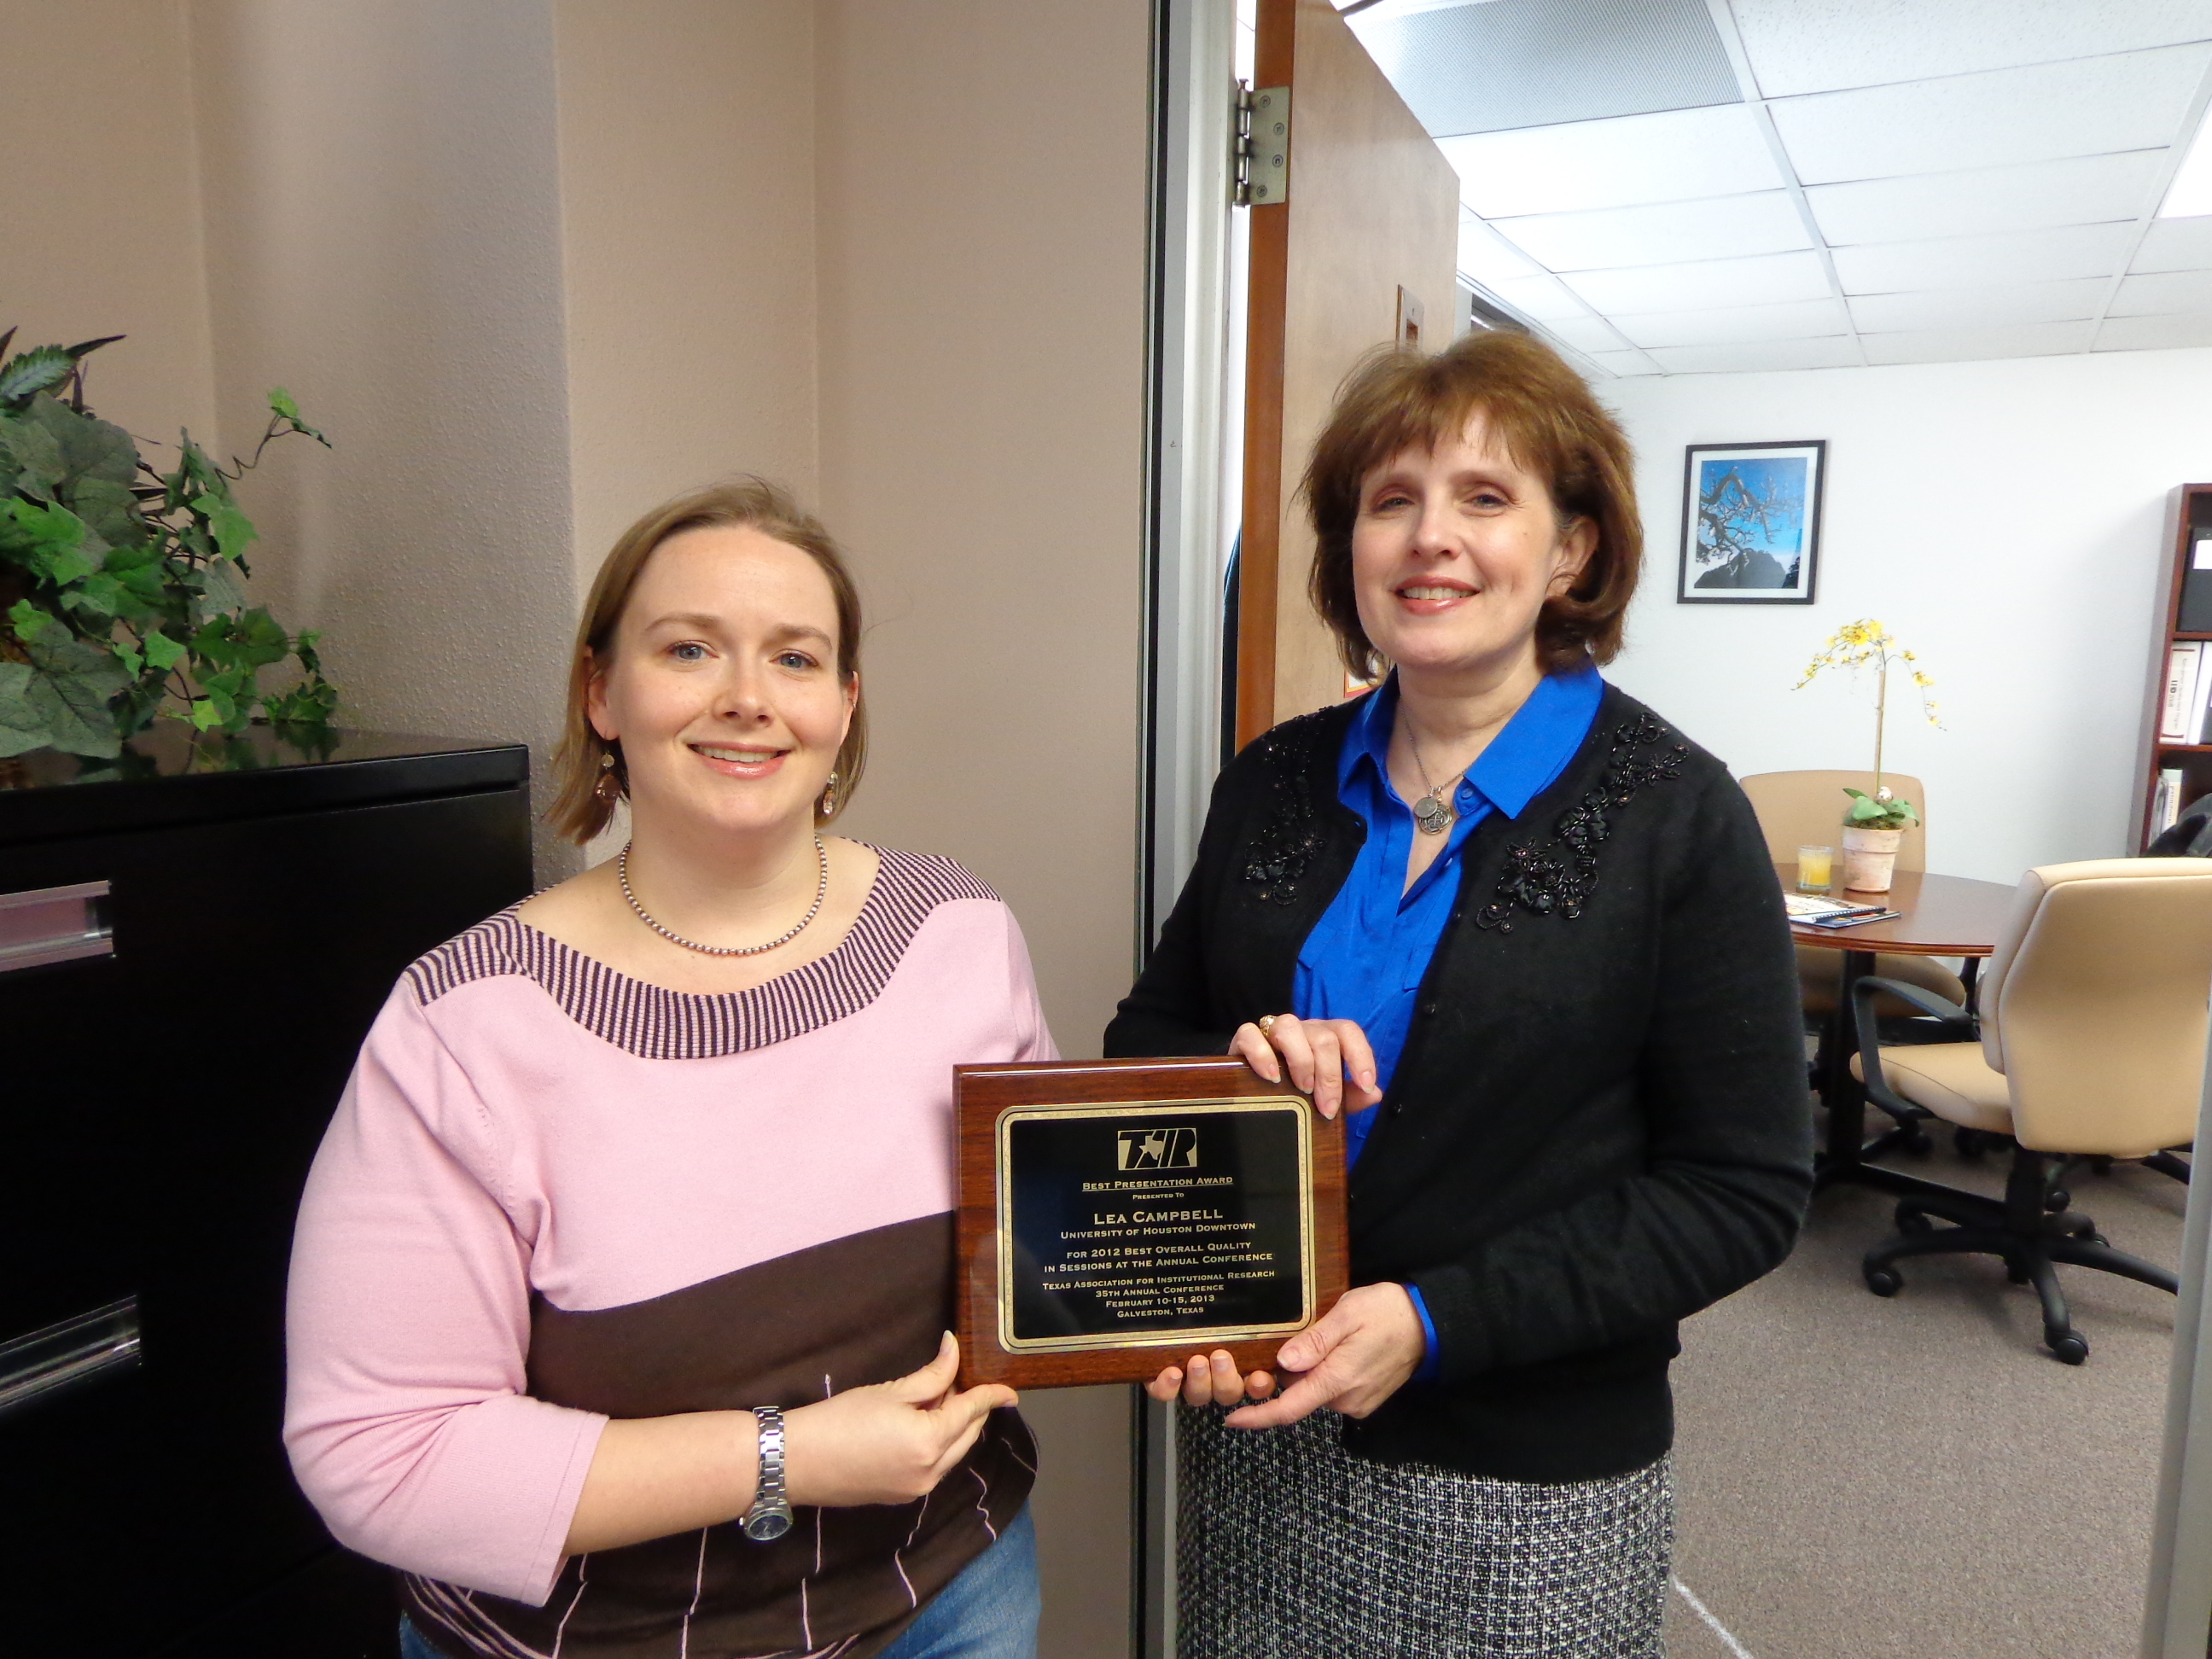 Carol Tucker,  director of Institutional Research and former TAIR president, presents the plaque for Best Presentation to Lea Campbell.